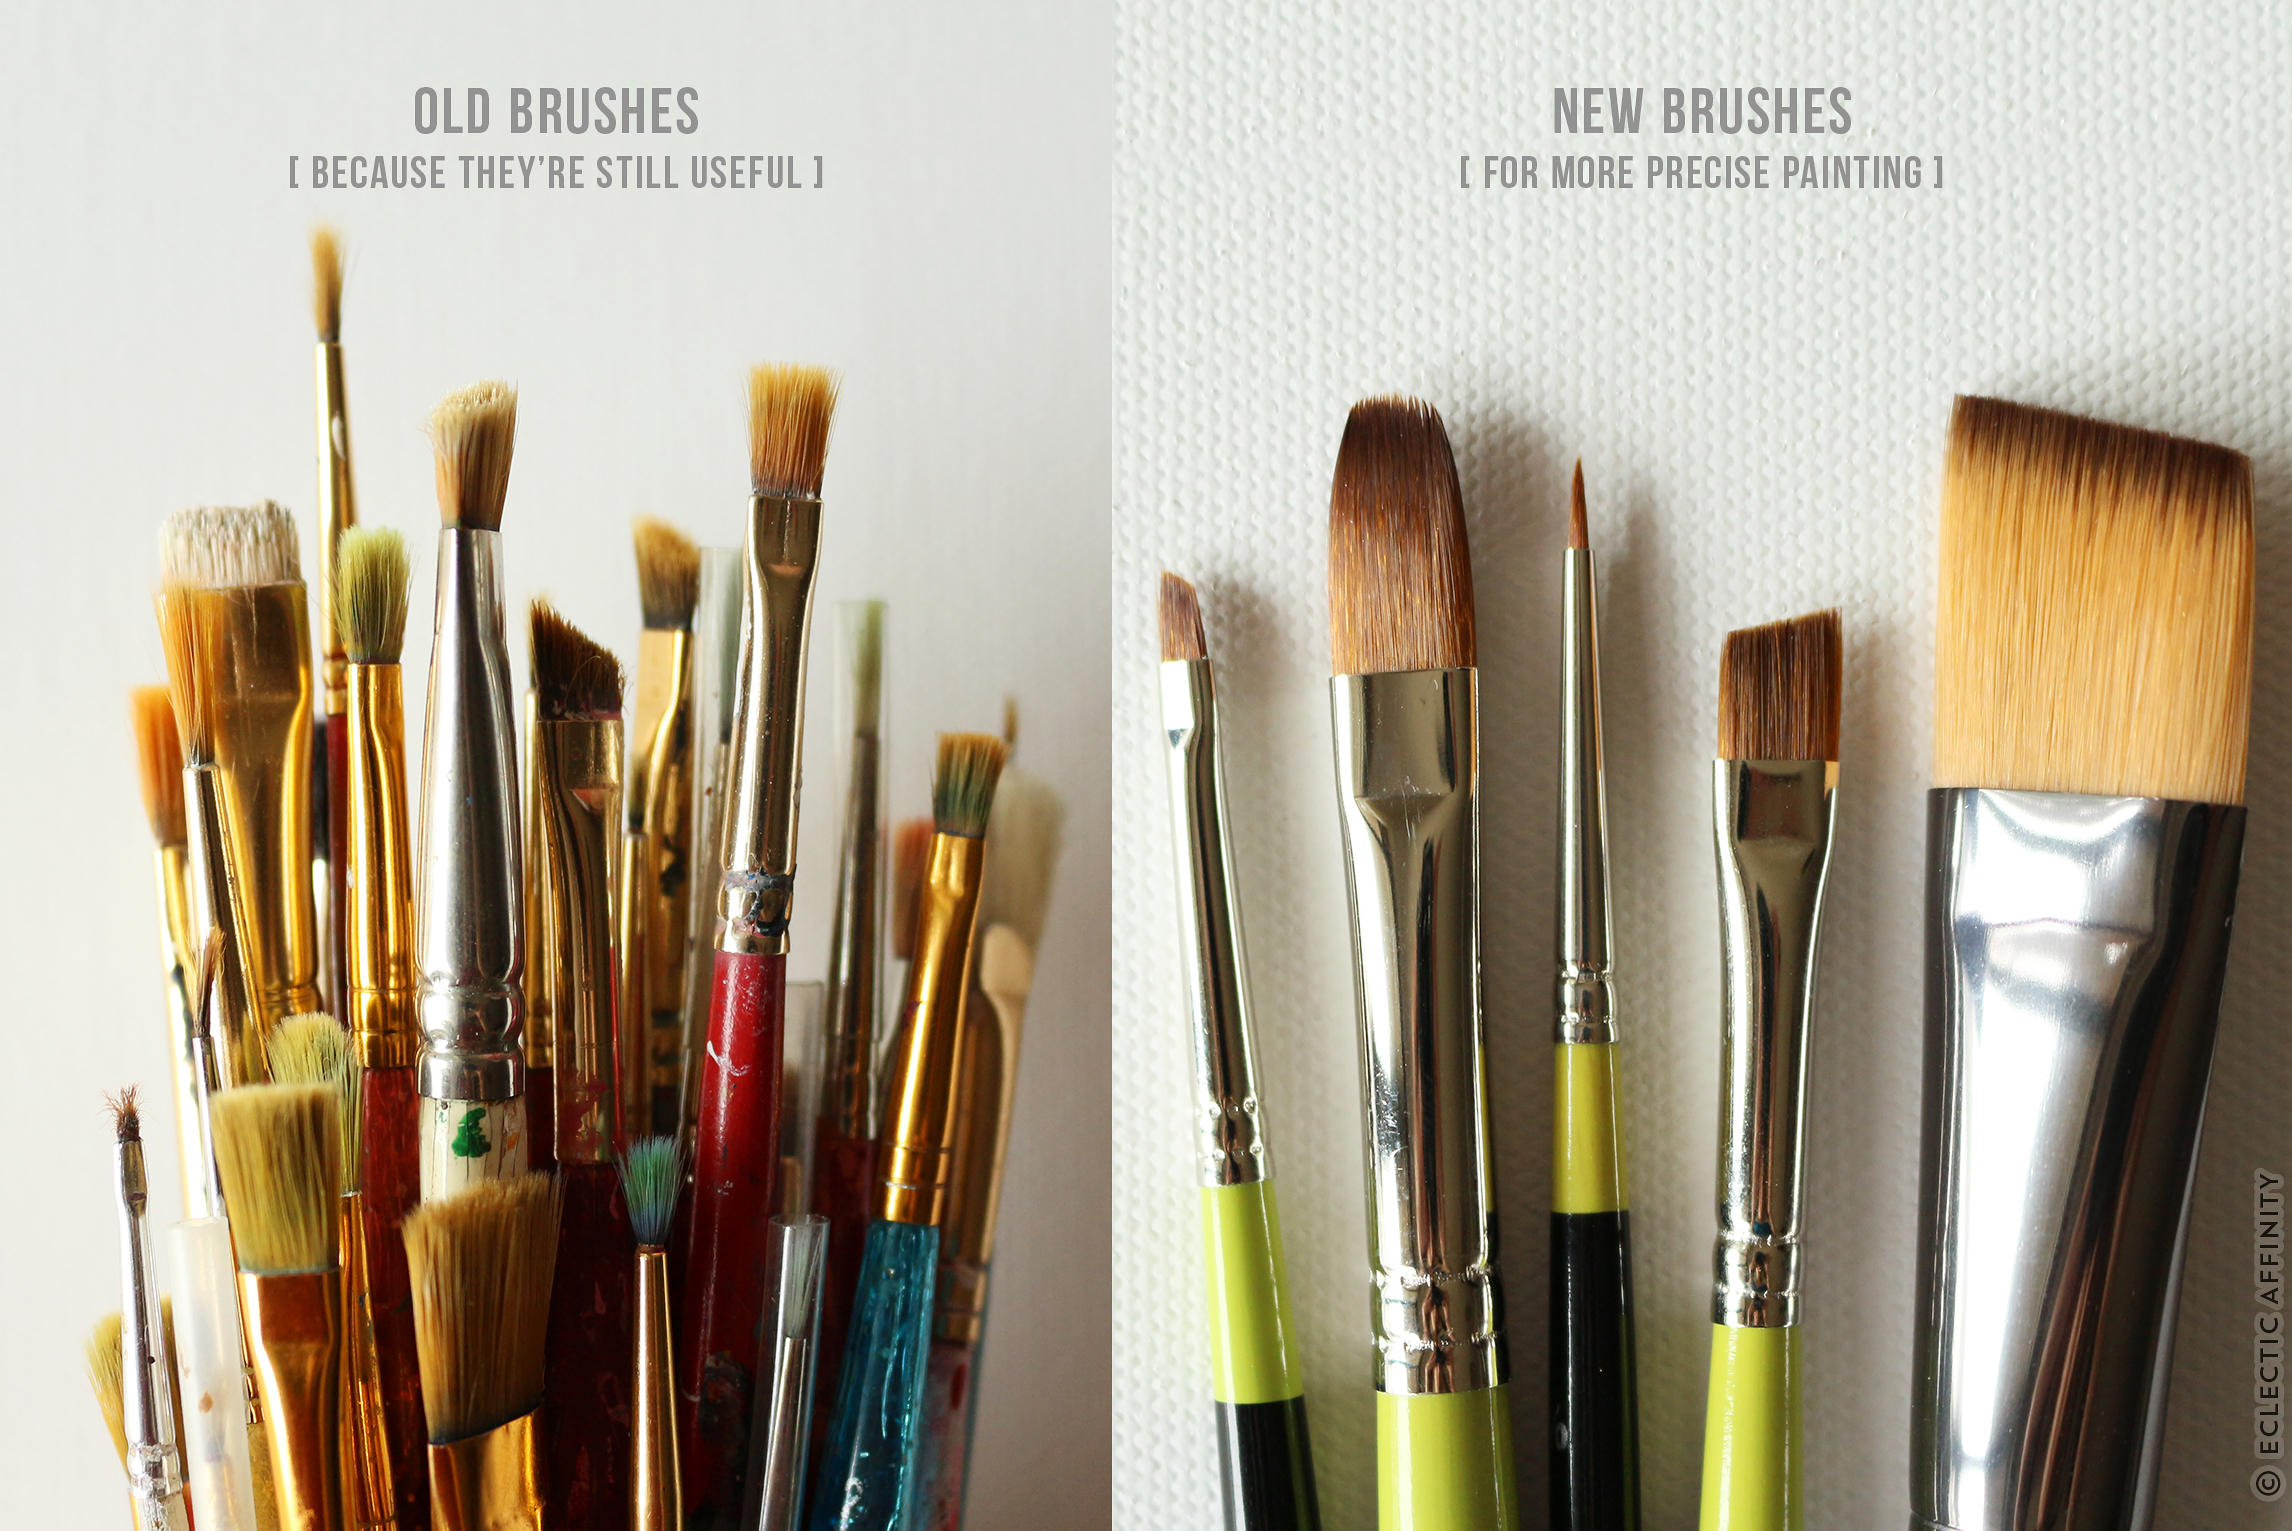 Paint brushes, old and new